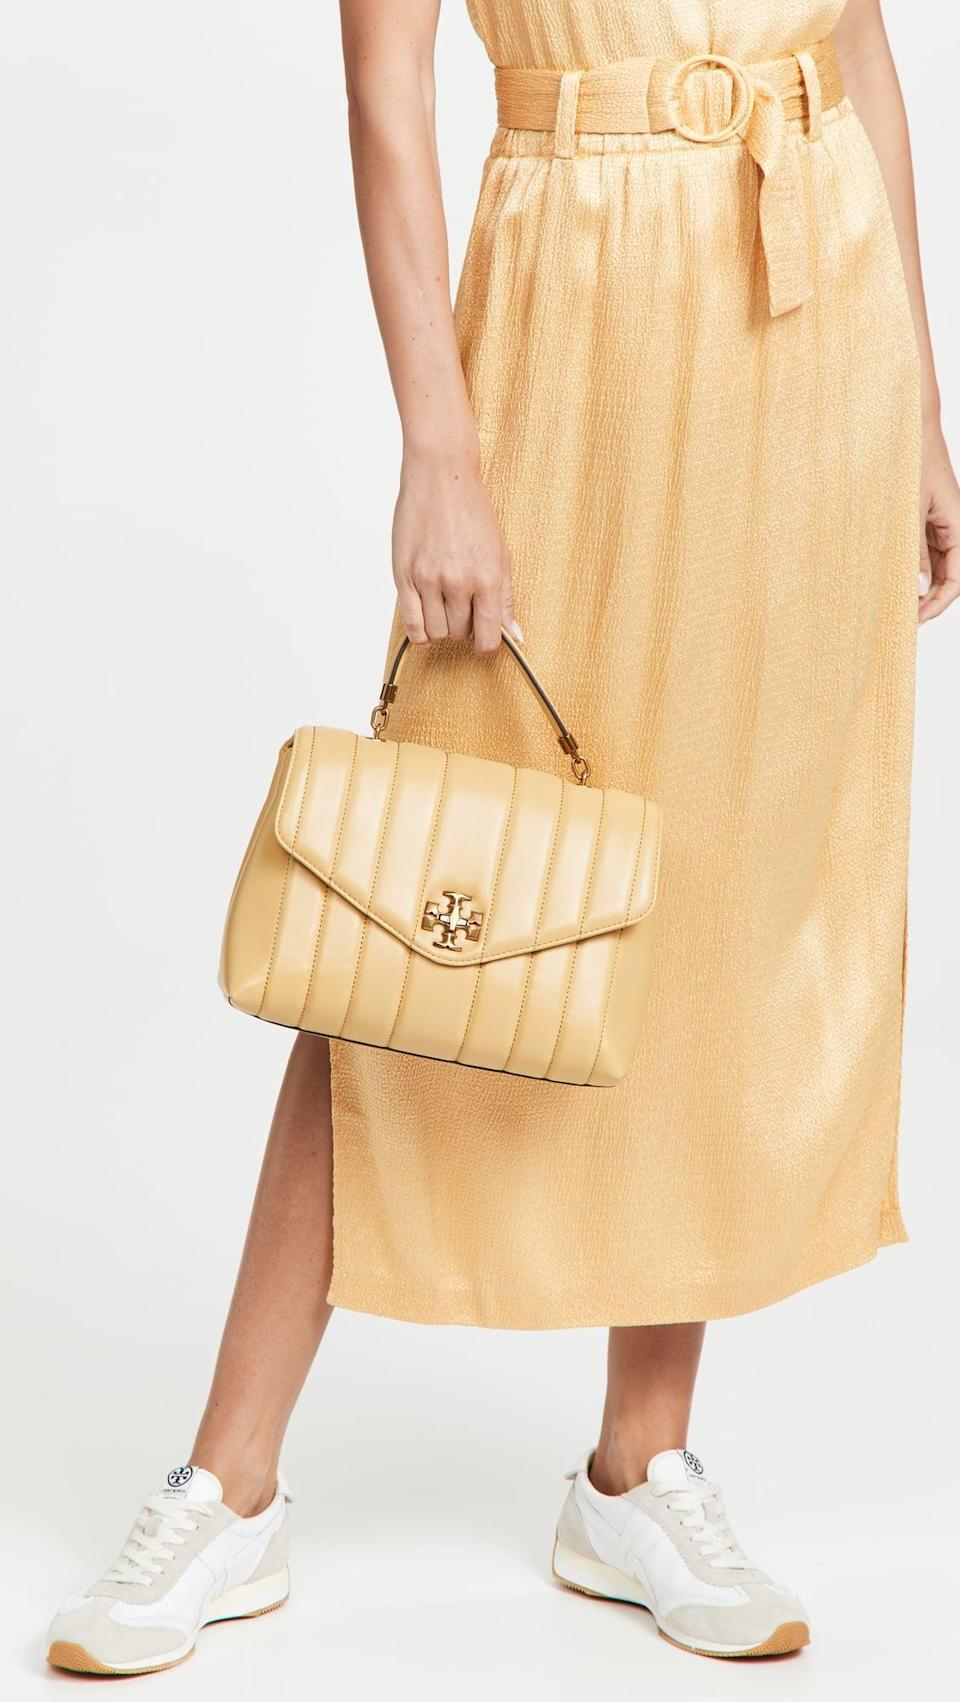 <p>Tory Burch is always a good choice, and the <span> Kire Top Handle Satchel</span> ($698) is too cute. The light yellow shade is the perfect pop of color.</p>